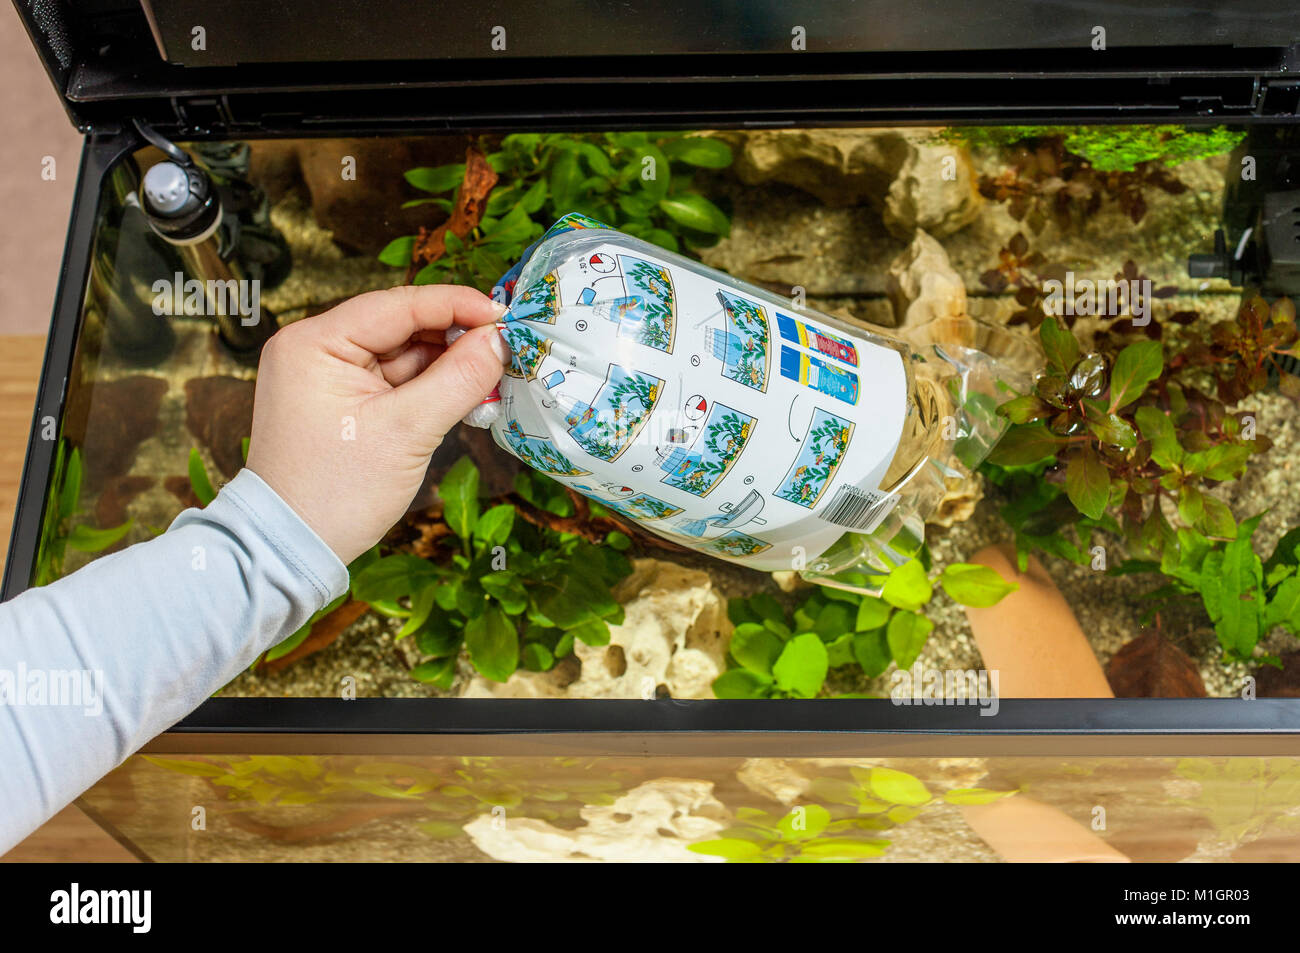 Introducing new fish into a freshwater aquarium: Hand lying bag with fish carefully on the surface of water, letting - Stock Image